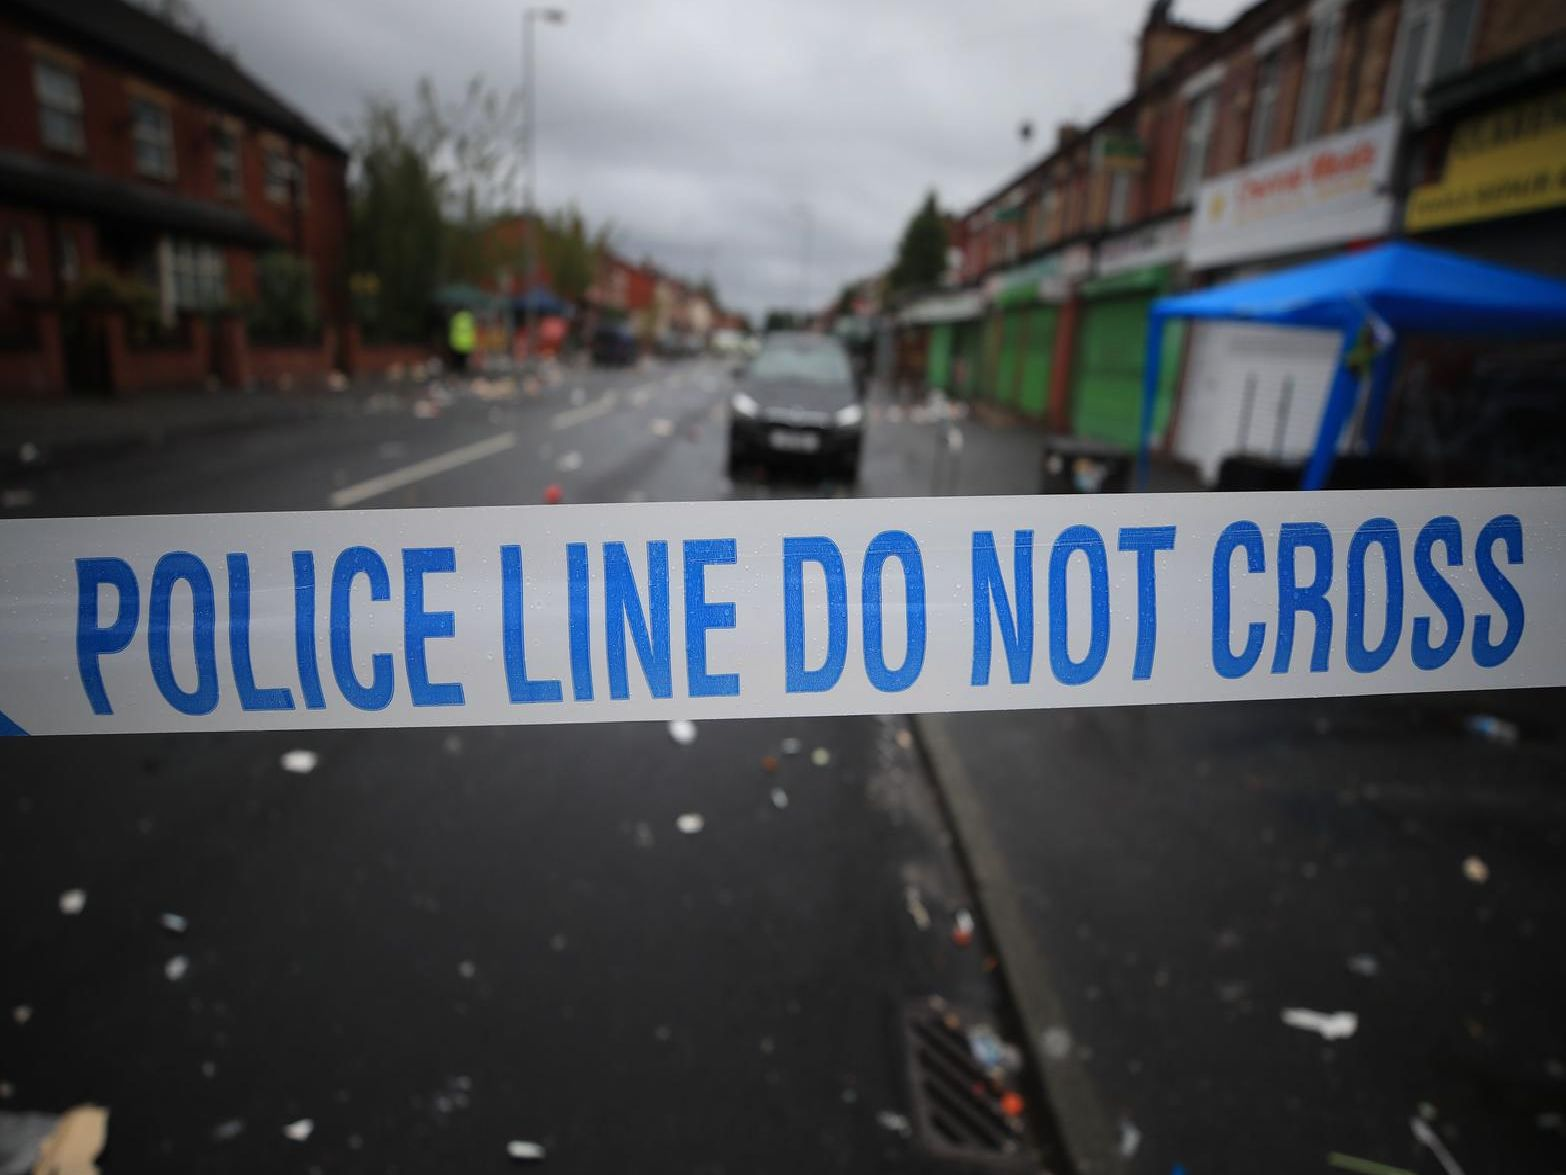 Police reveal the 10 worst violence and sexual offences hotspots in Leeds according to latest 2019 figures. PIC: PA